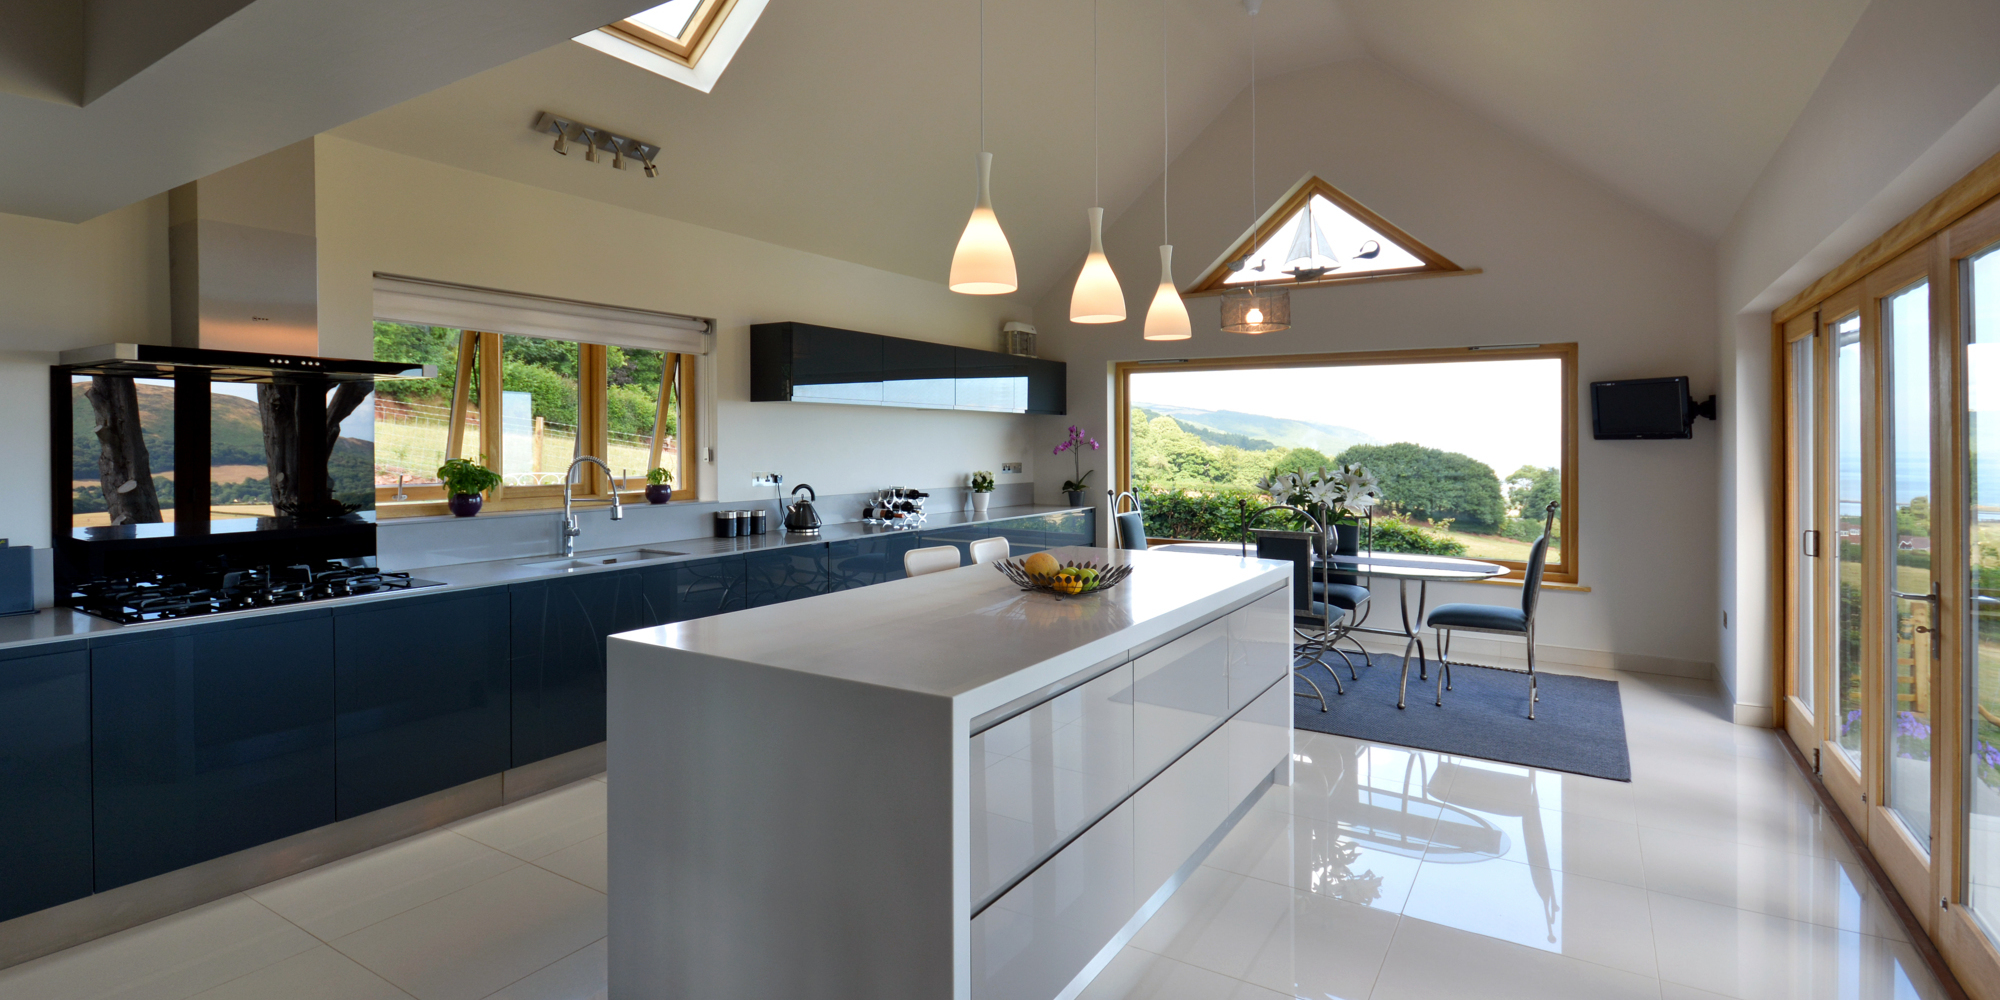 Home Design Somerset Architect, Planning Exmoor Quantocks Taunton, Architecture Style Southwest